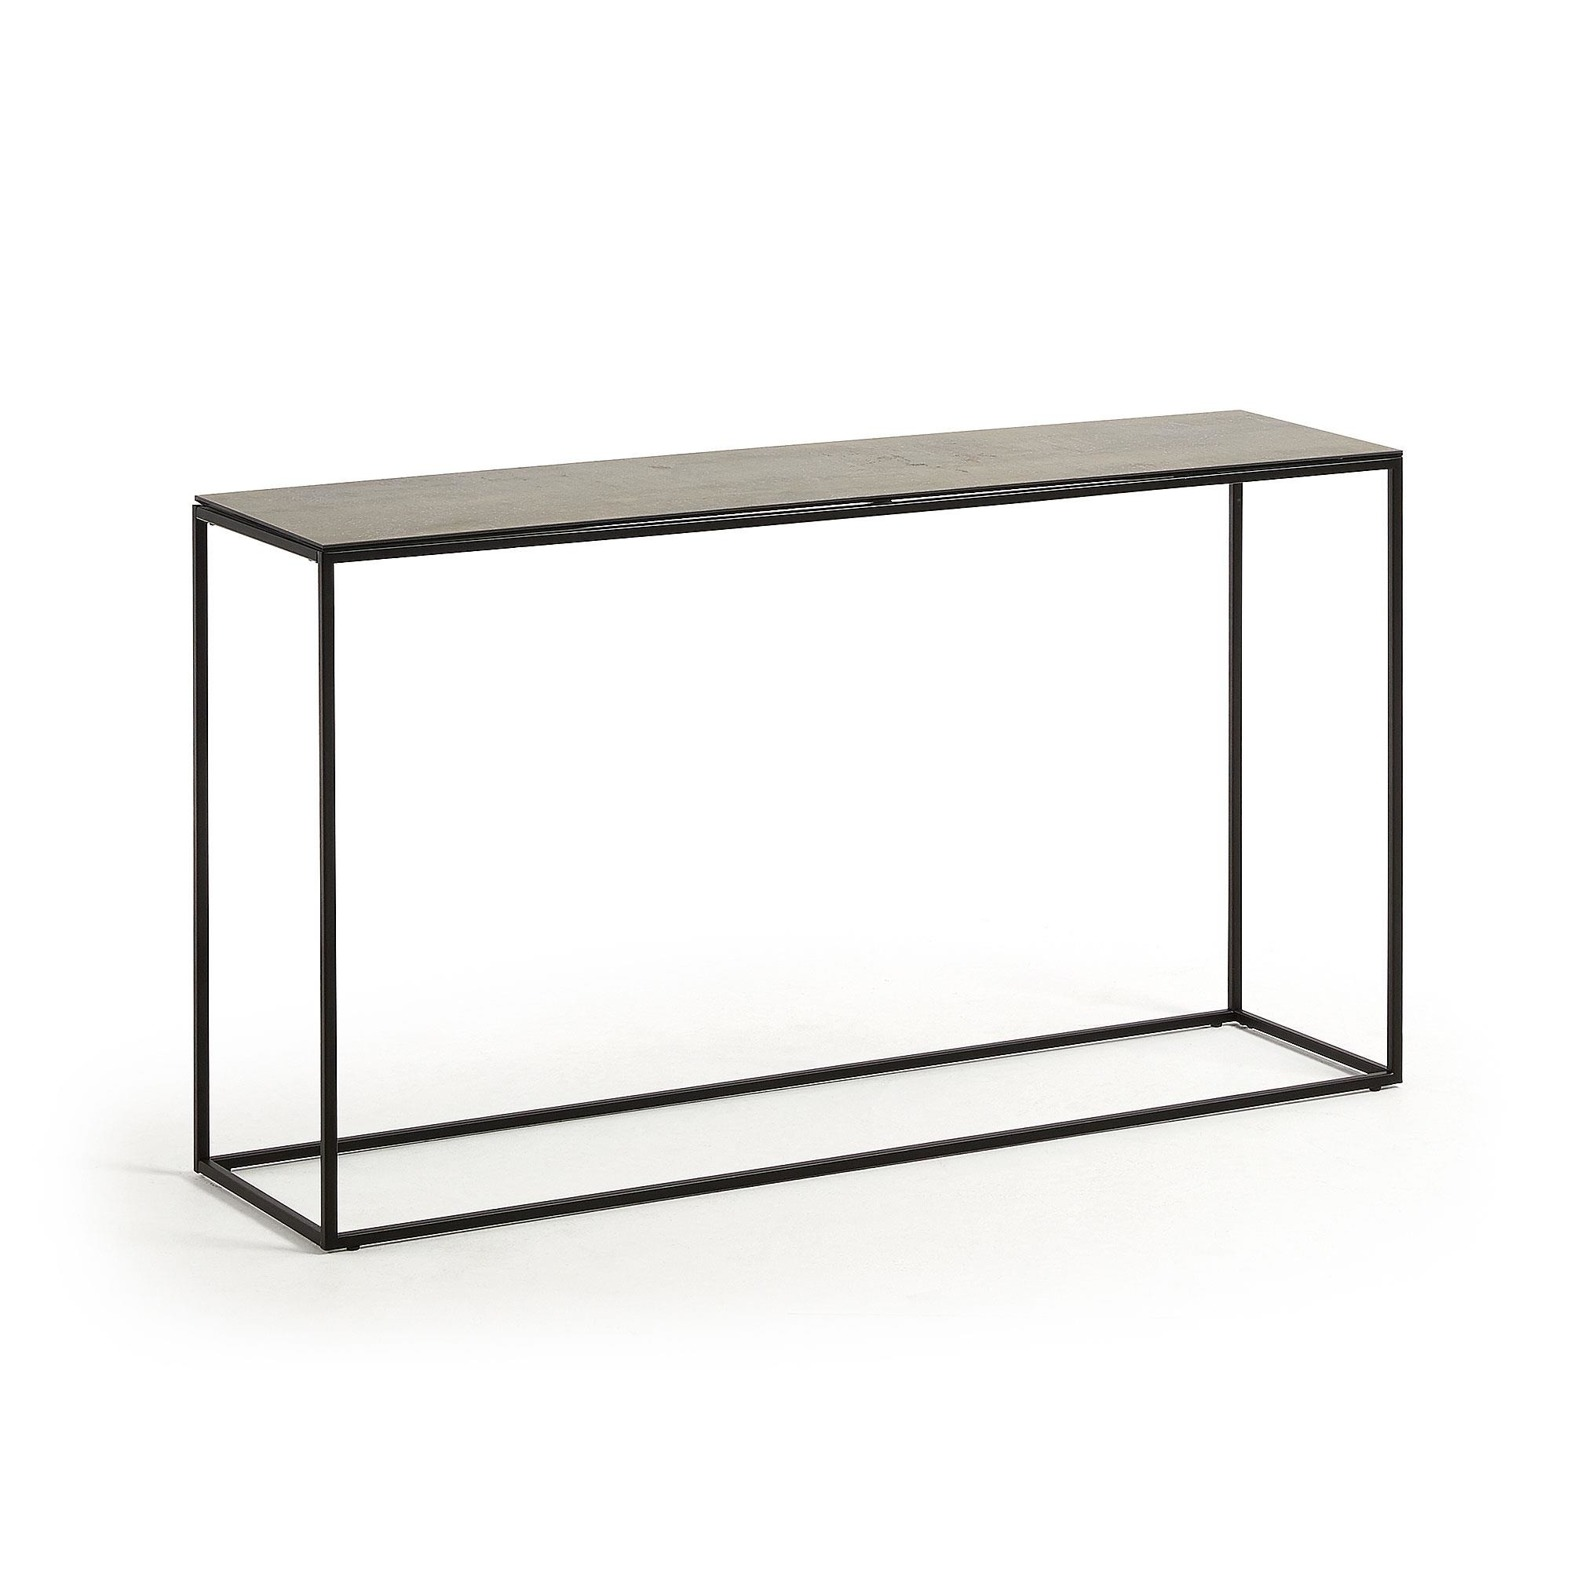 RAWENNA Console table 110x74 black porcelain Iron Moss